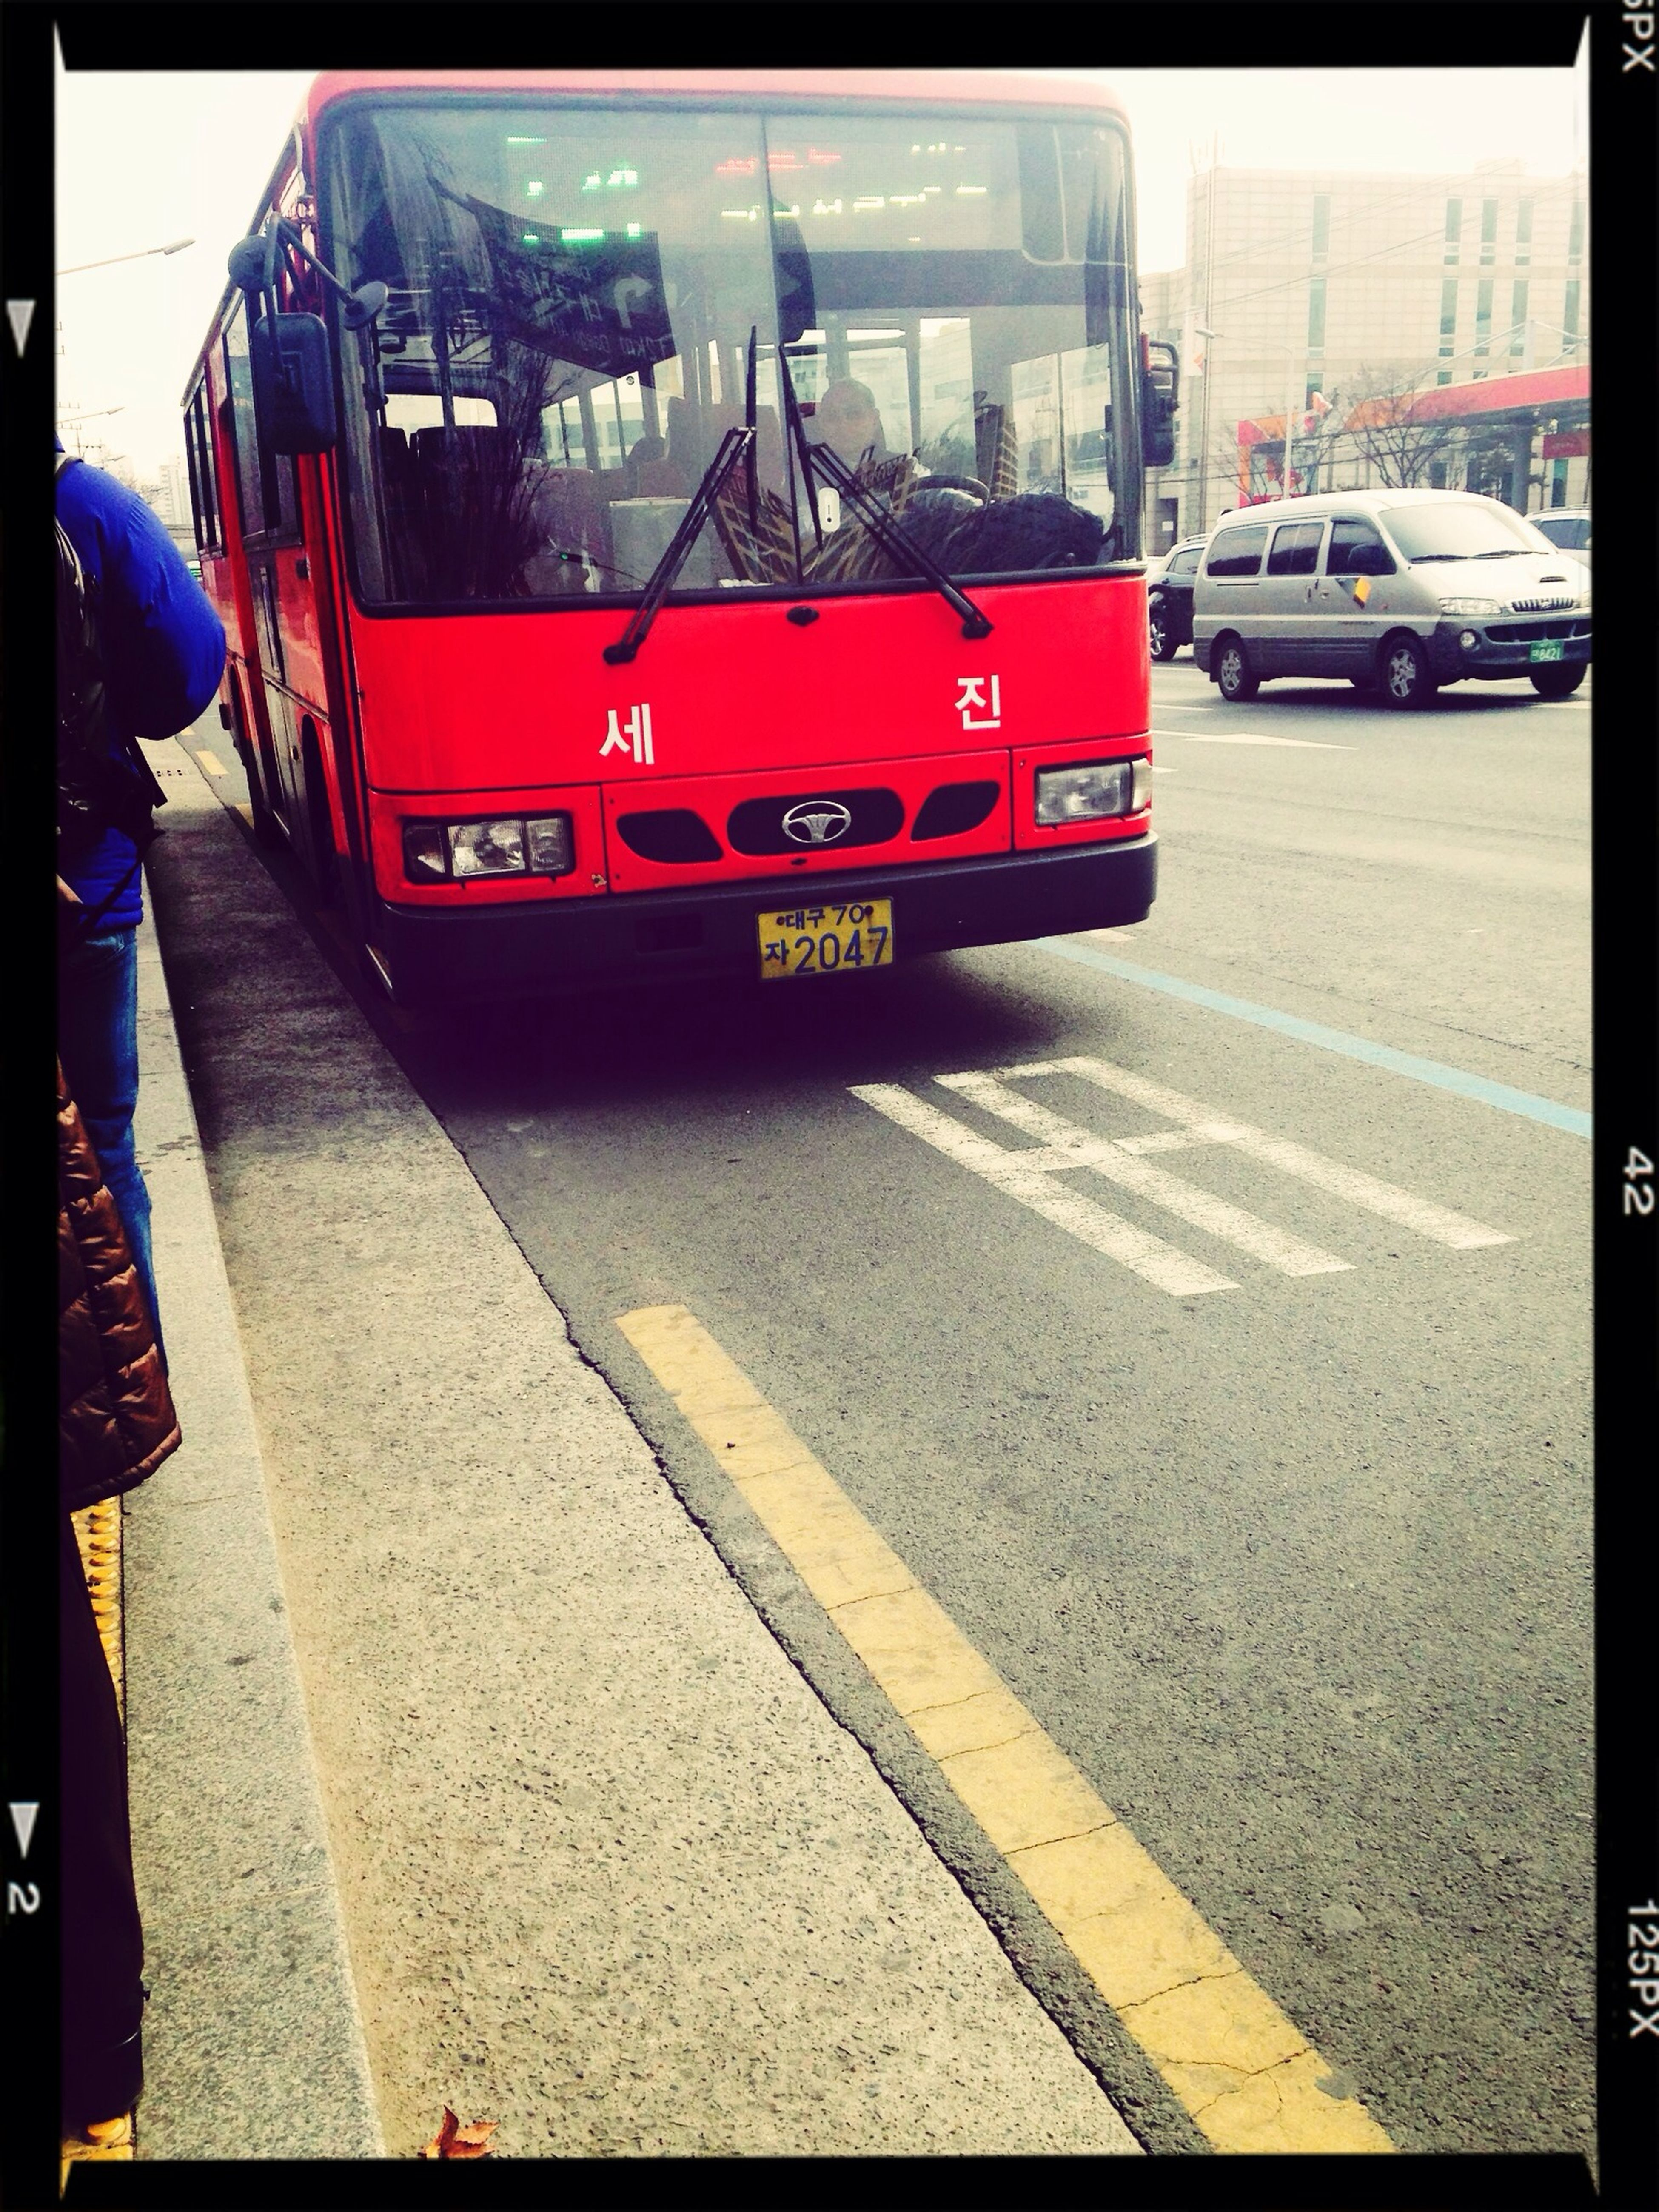 Have you ever seen the RED bus in Daegu?? It's a little special to me. :) Walking Around